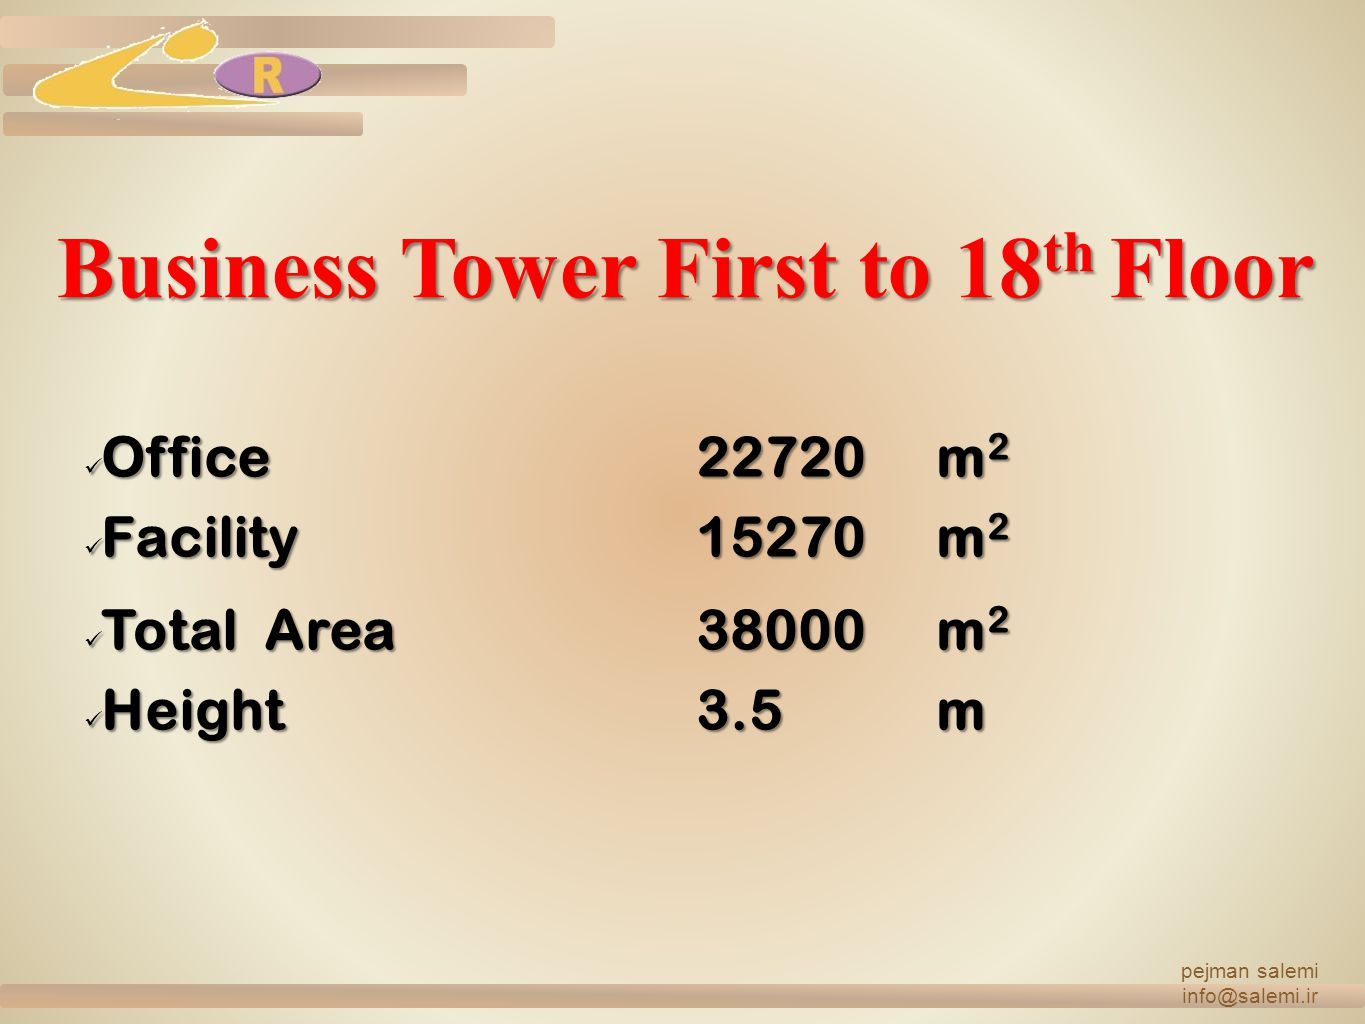 Business Tower First to 18th Floor